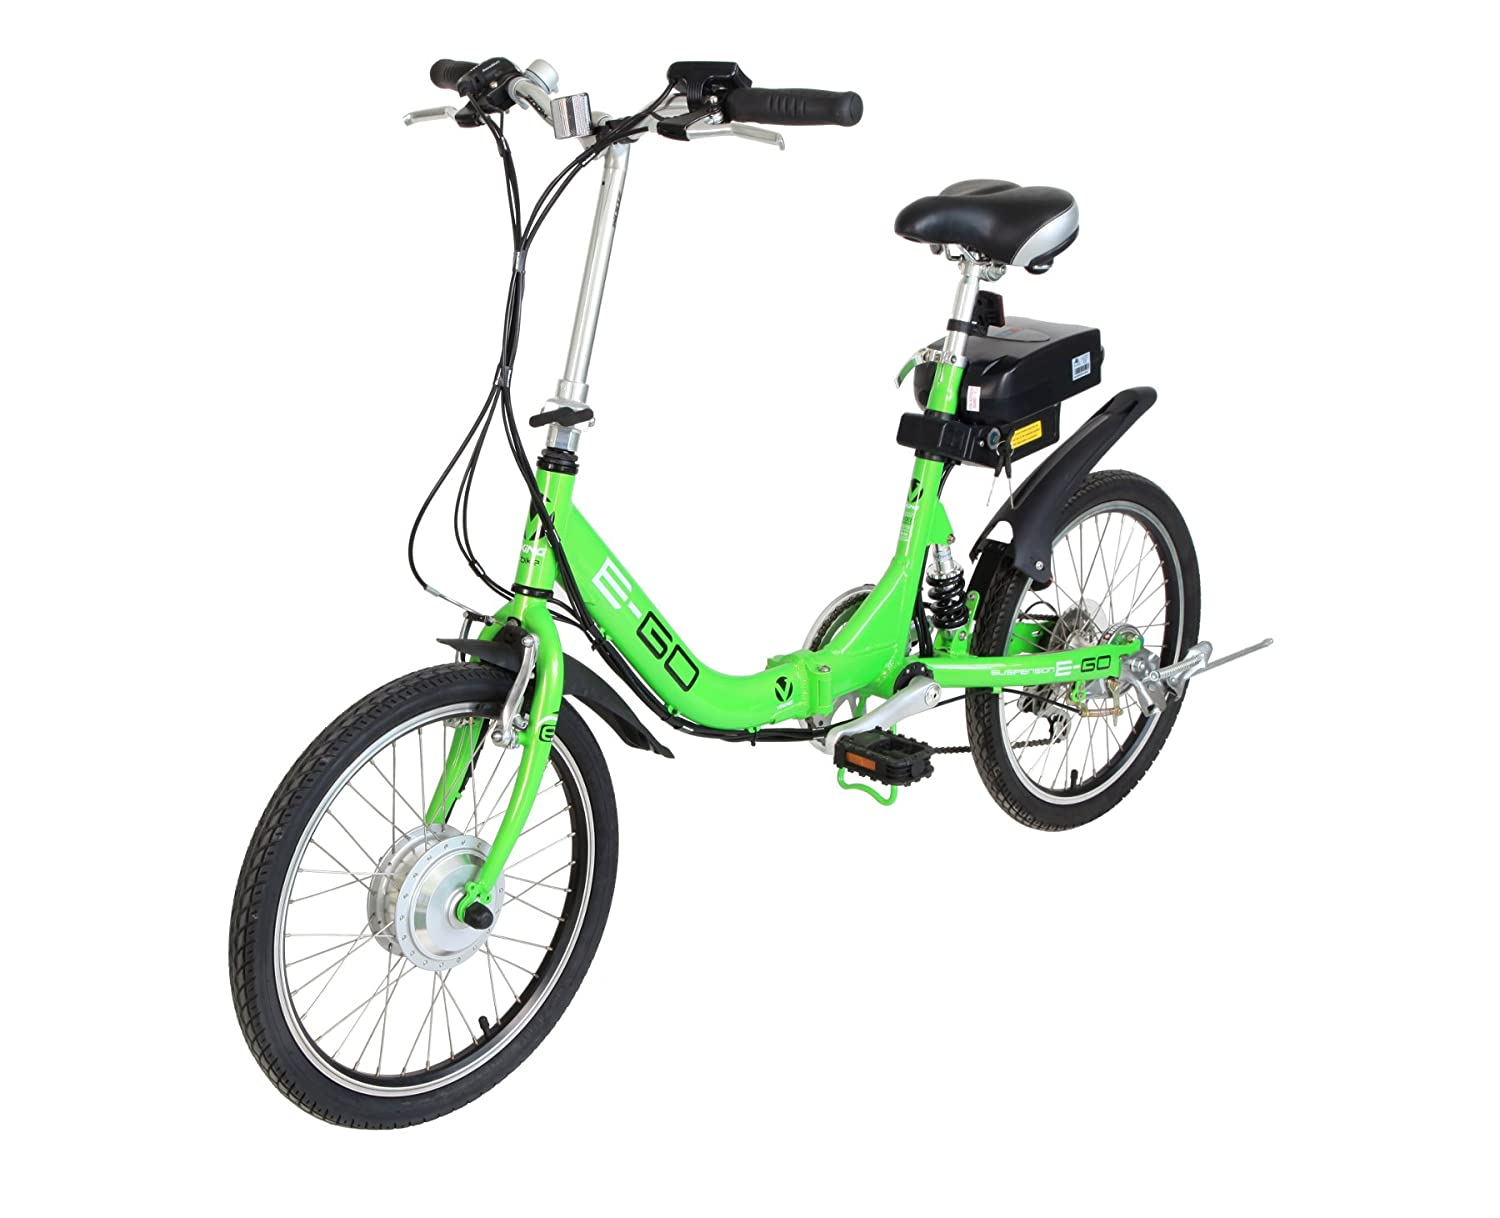 Viking E-G0 6 Speed Folding E Bike with Electrical Assist - (Green, 15 Inch, 20 Inch)